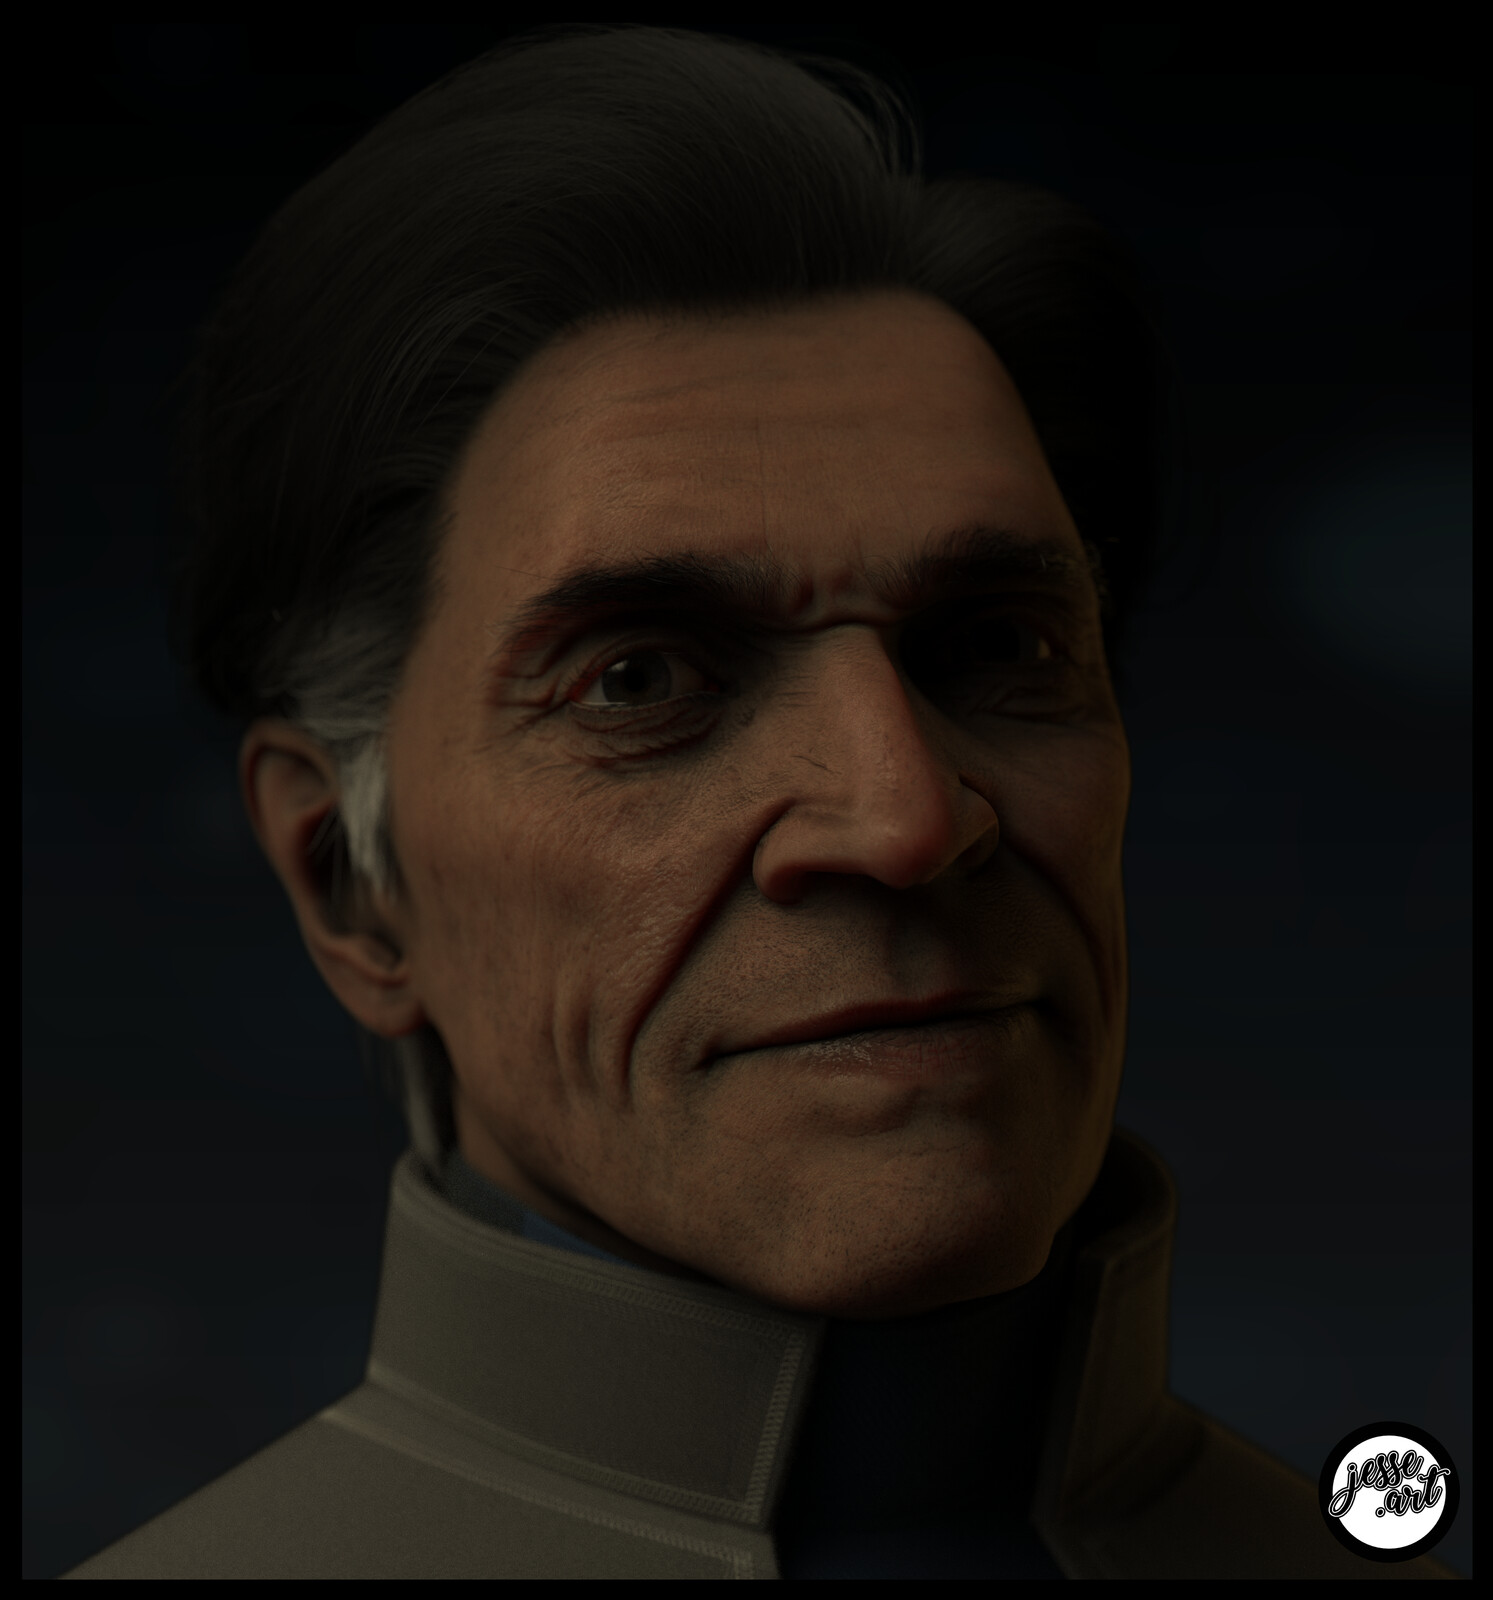 Bust #29: The Commander